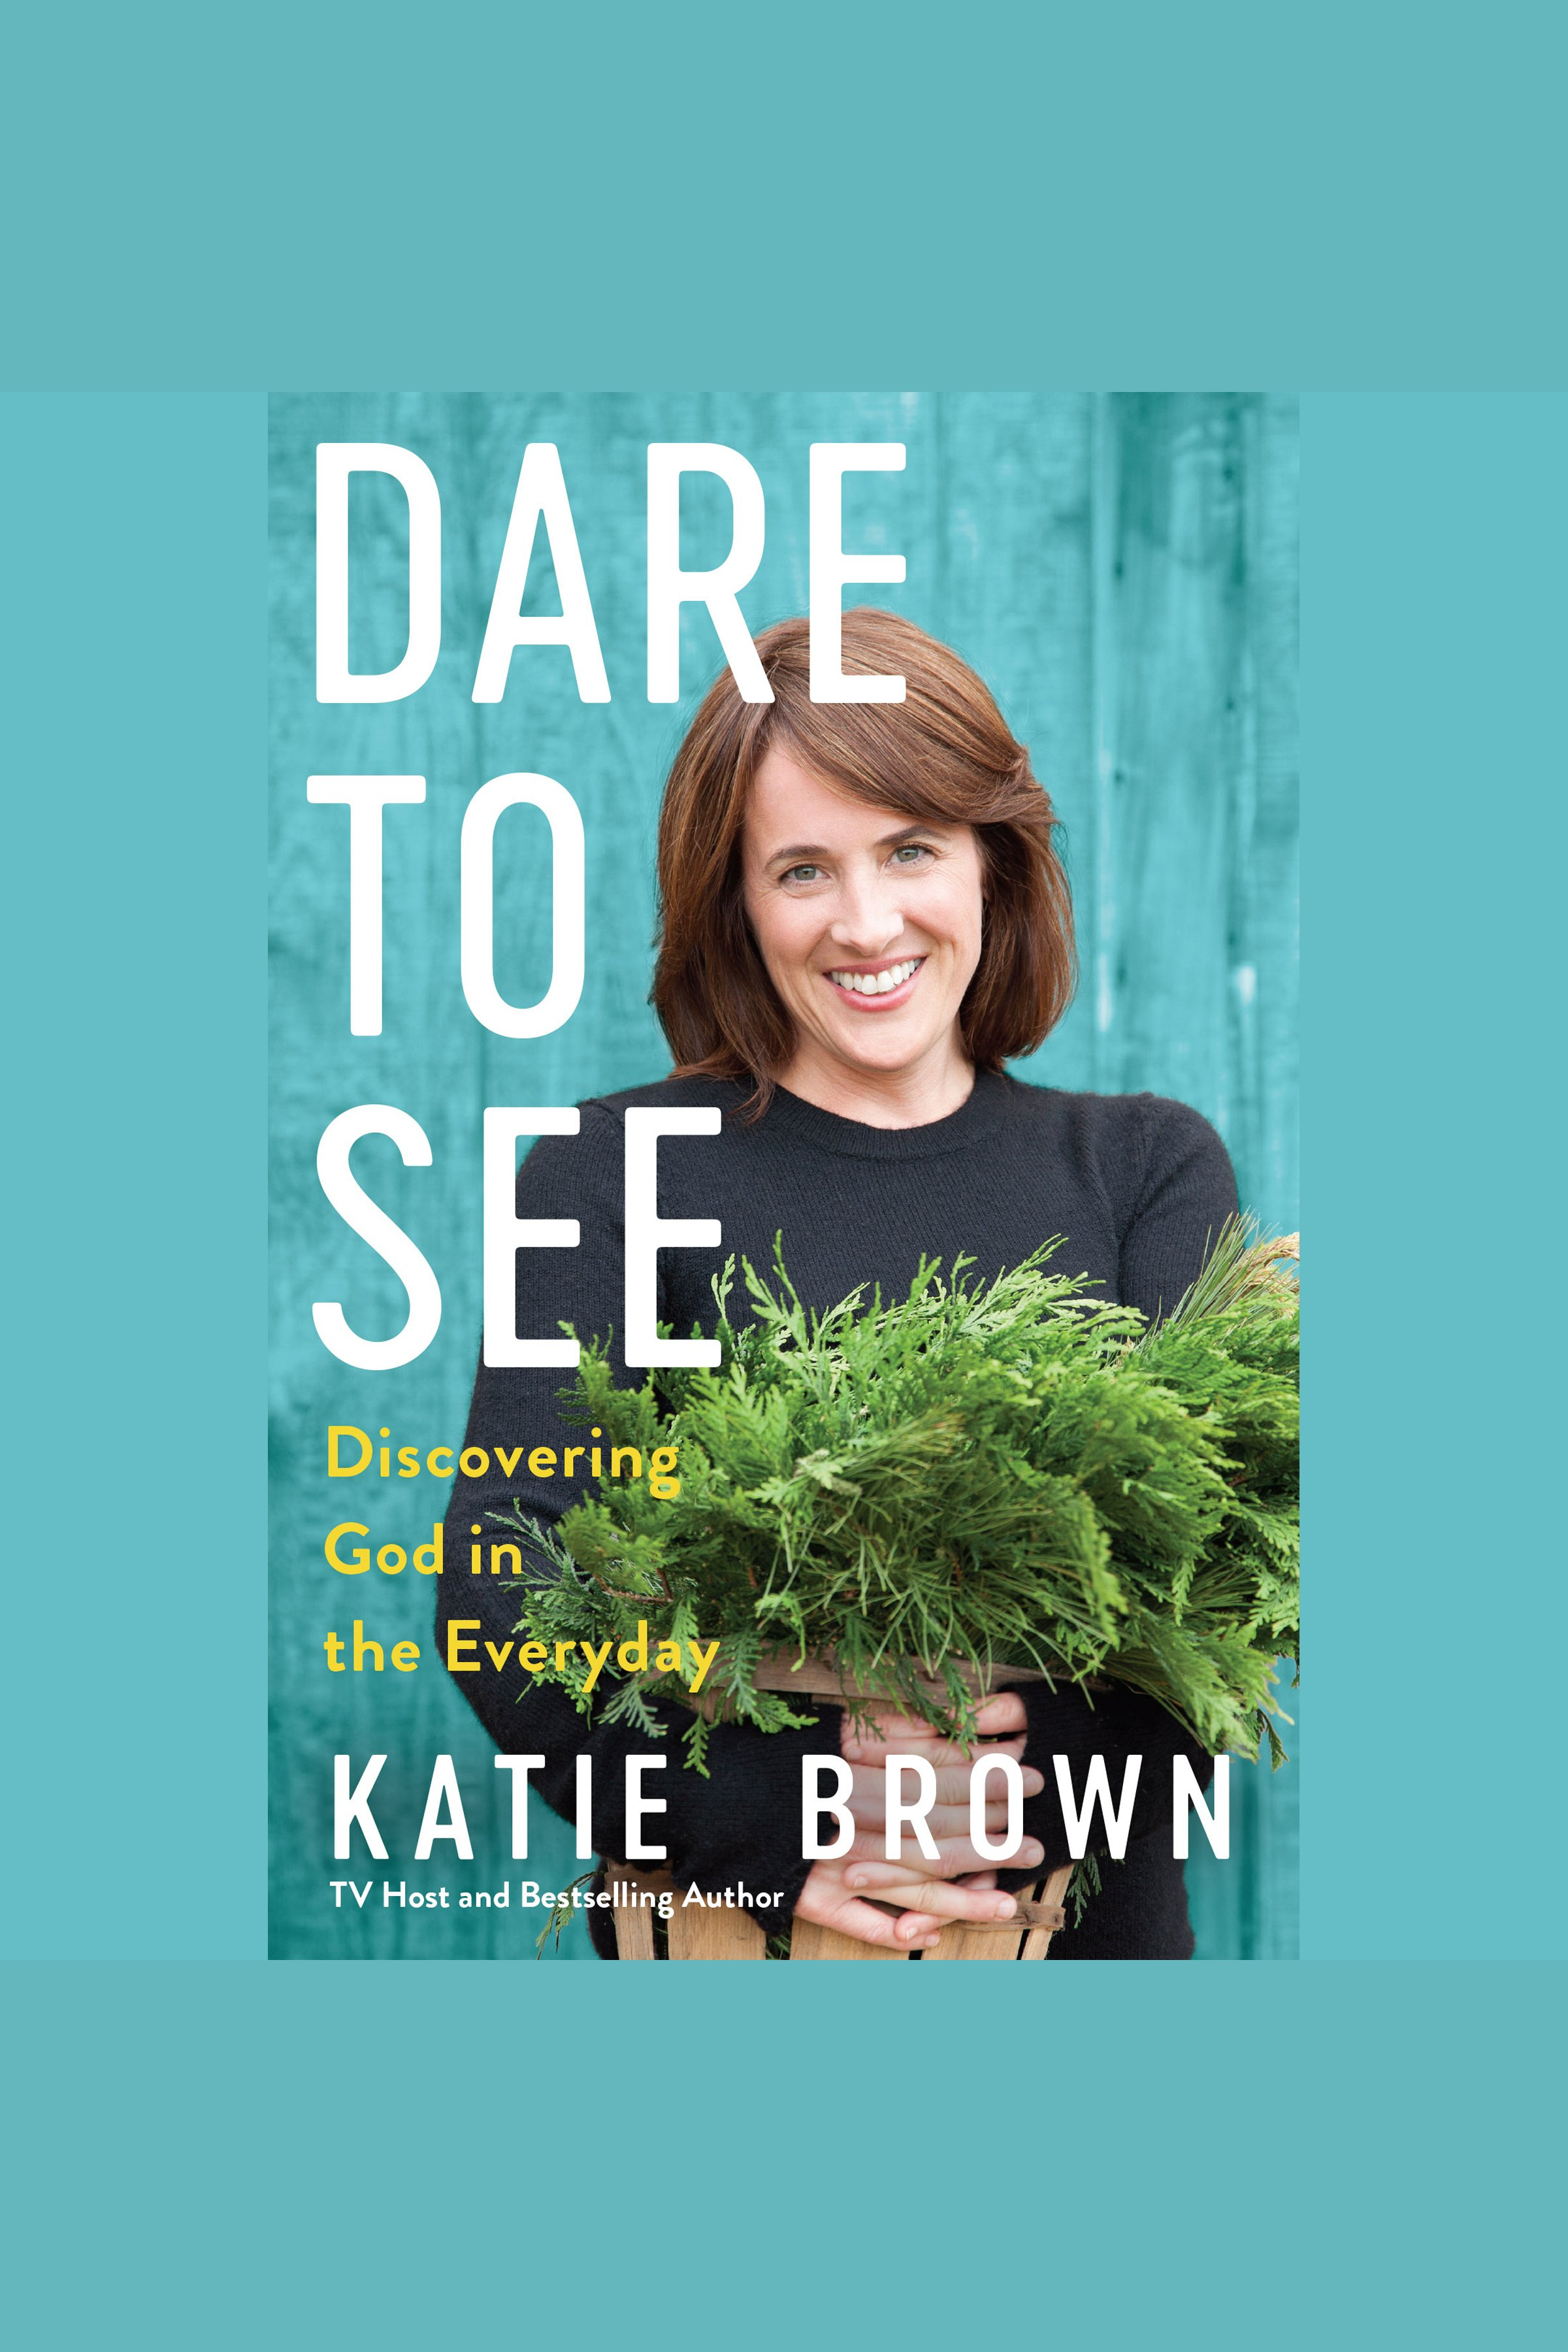 Dare to See Discovering God in the Everyday